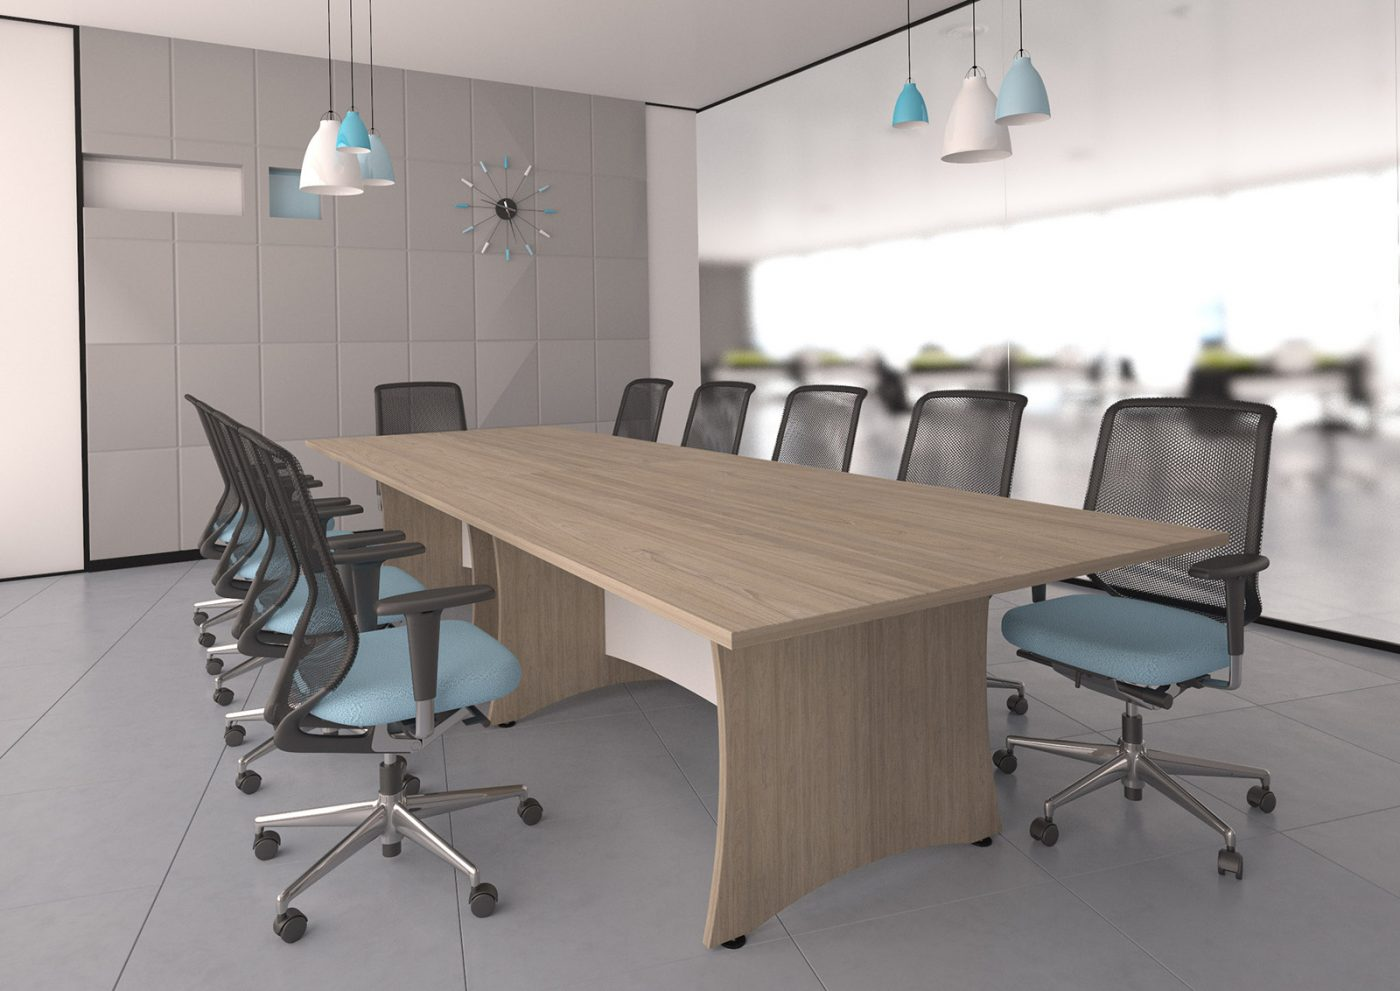 roma lorenzo, panel end, boardroom, meeting table, modesty panel, office furniture